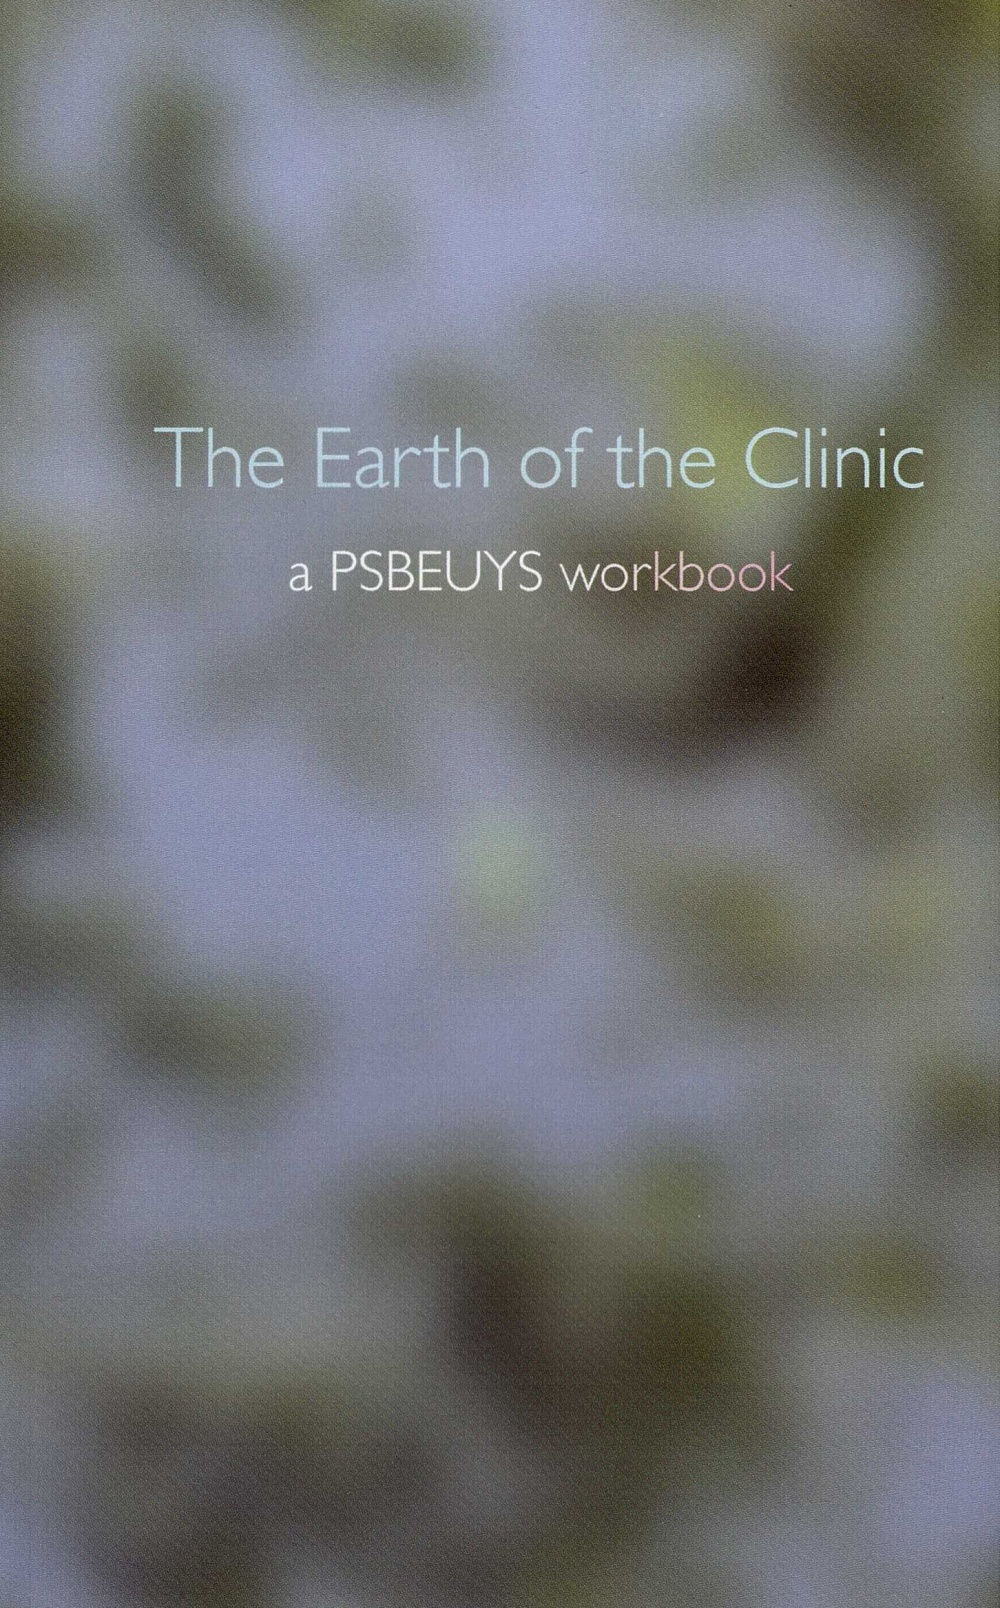 The Earth of the Clinic, A PSBEUYS workbook